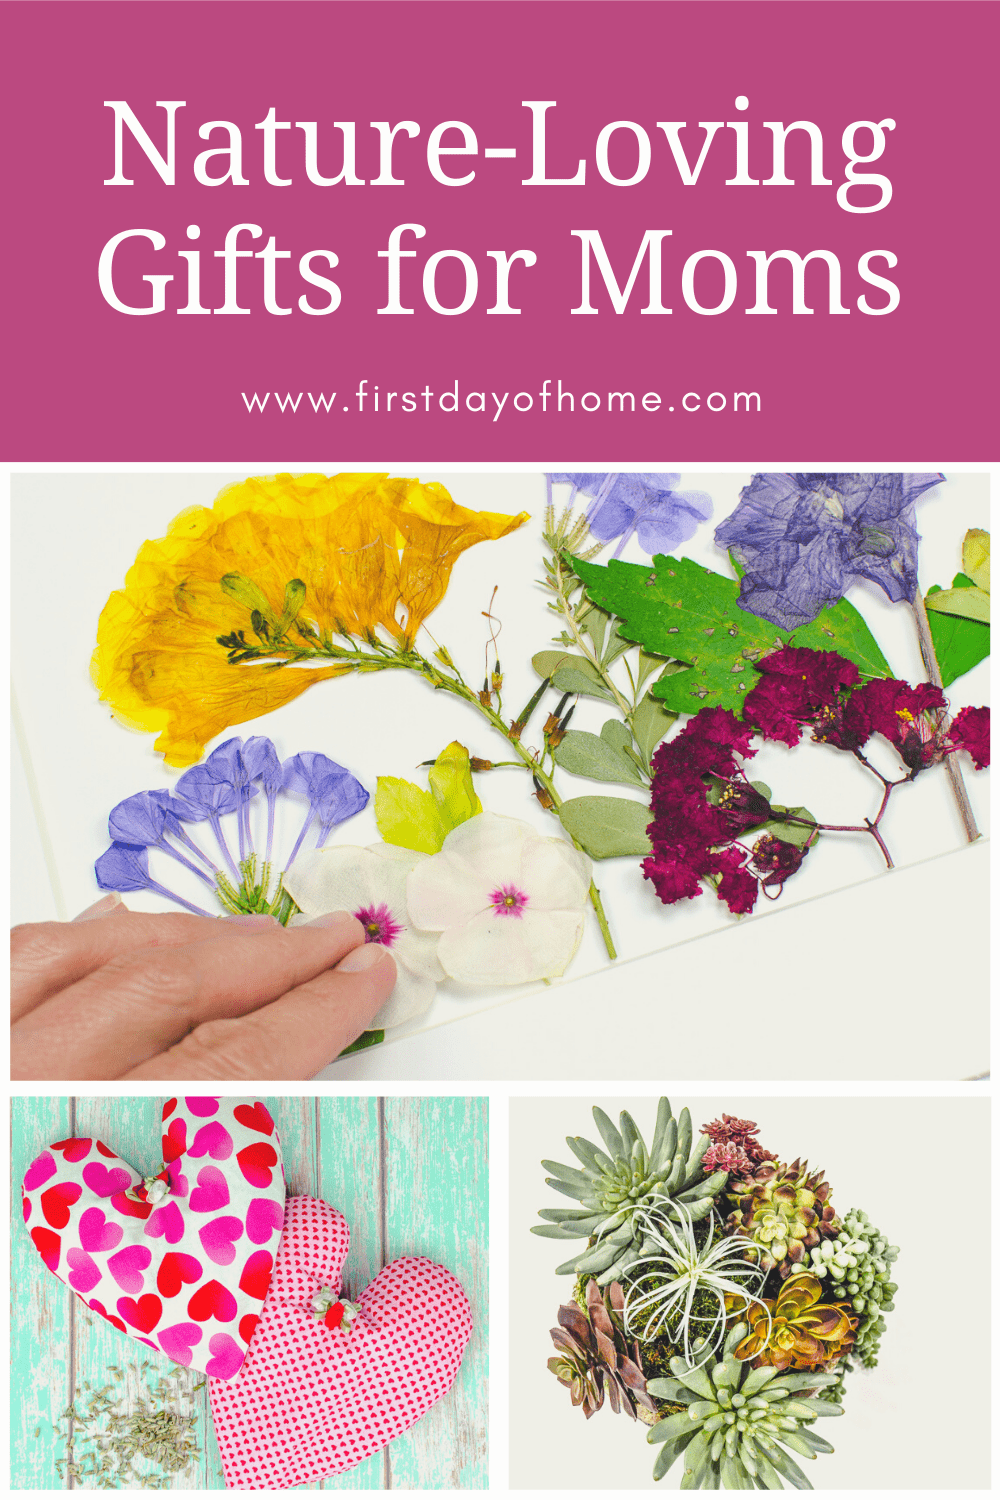 Gifts for nature-loving moms